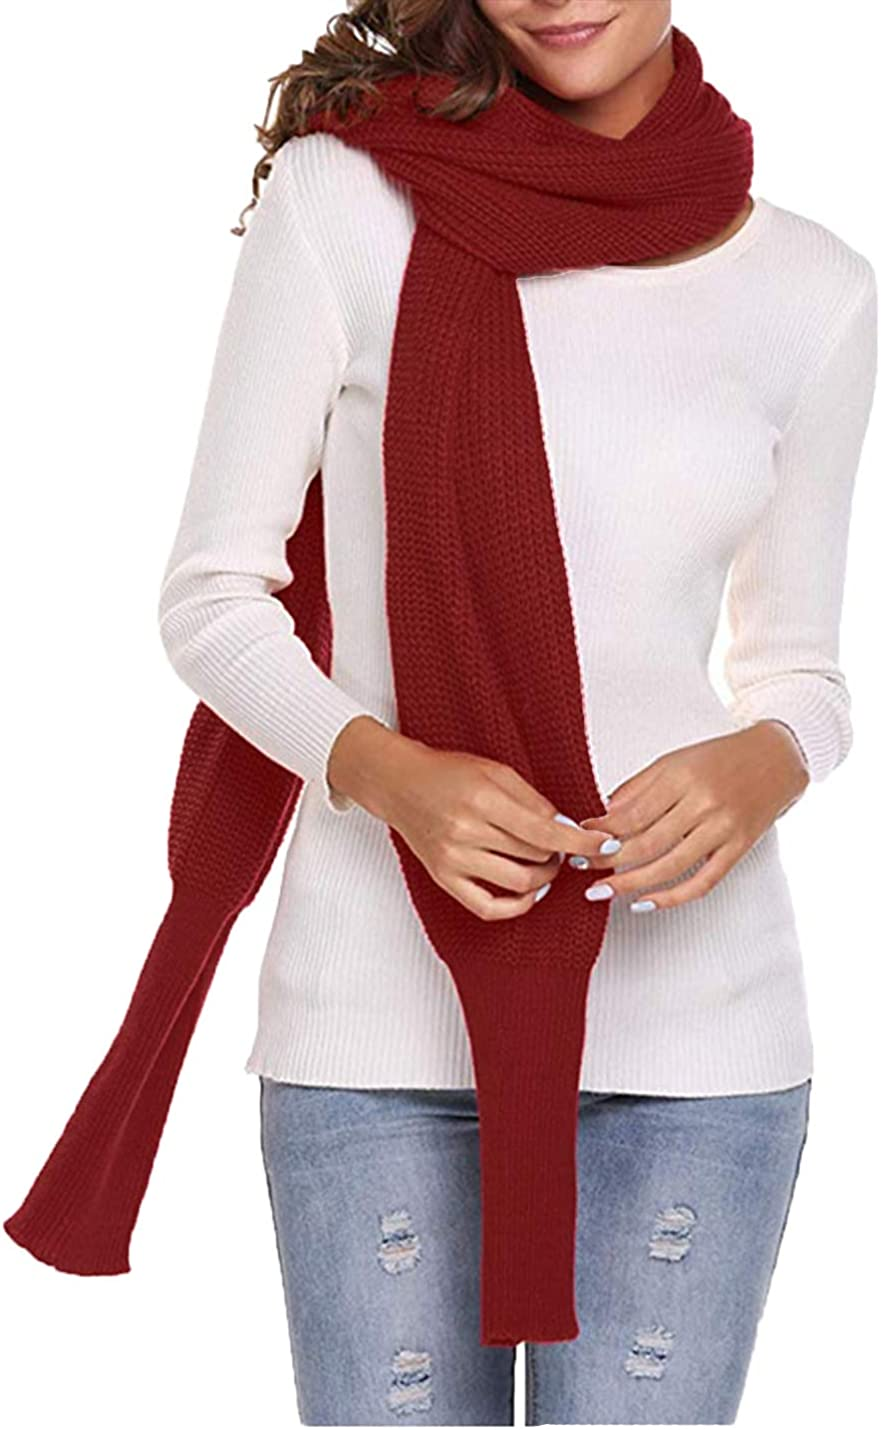 PUWEI Women's Multi Way Knit Shawl Wrap Sweater Coat with Sleeves